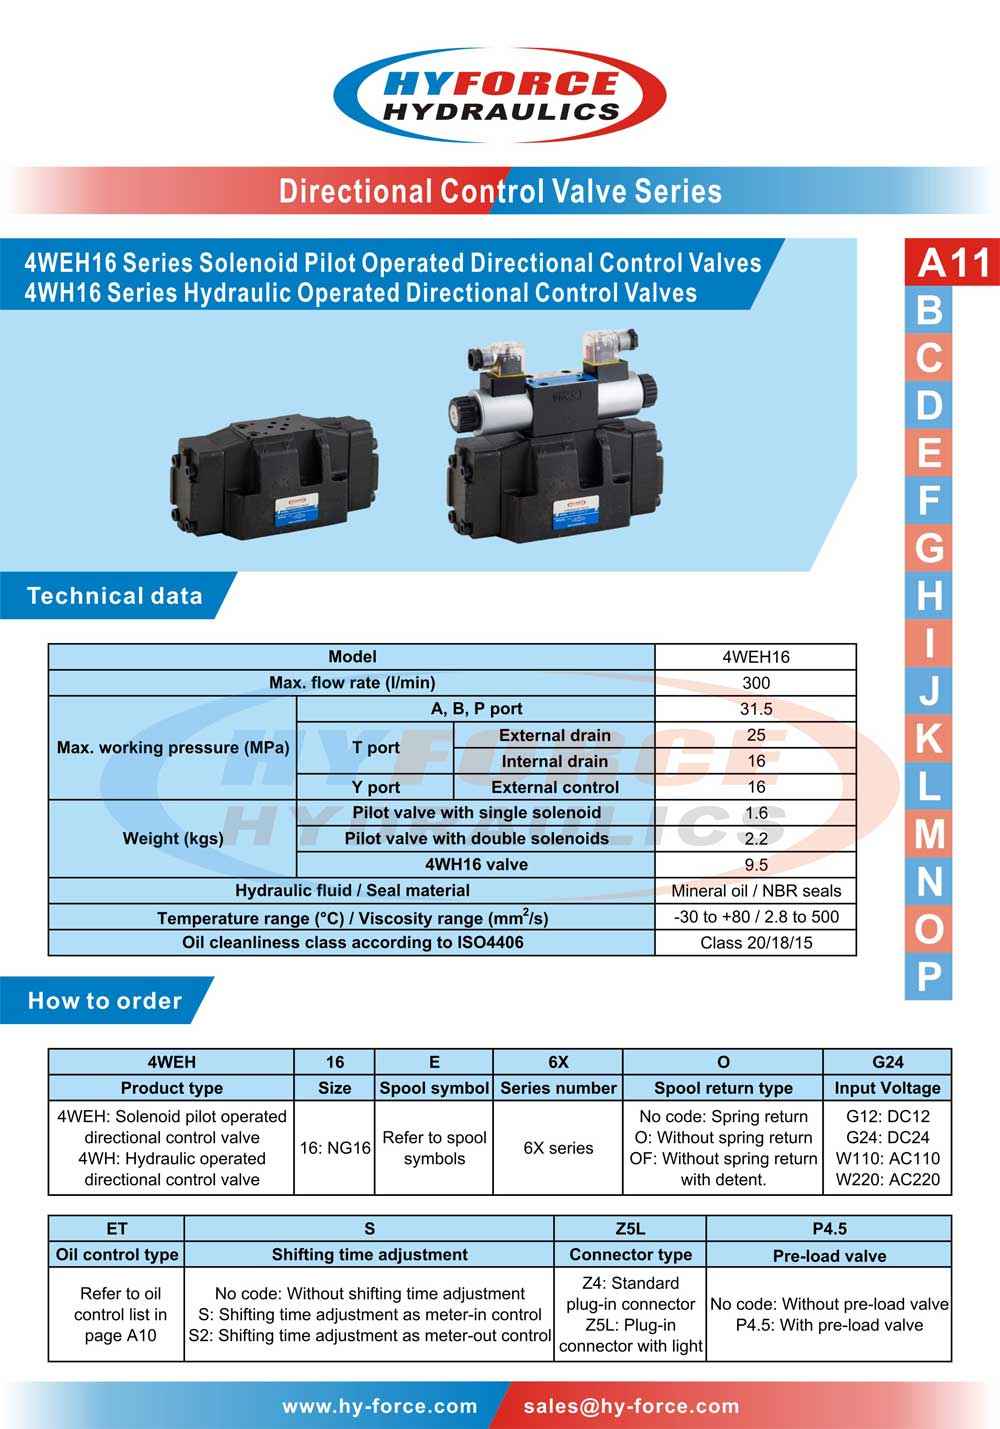 4weh16 series solenoid pilot operated directional control valves technical data how to order spool symbols dimensions nvjuhfo Choice Image